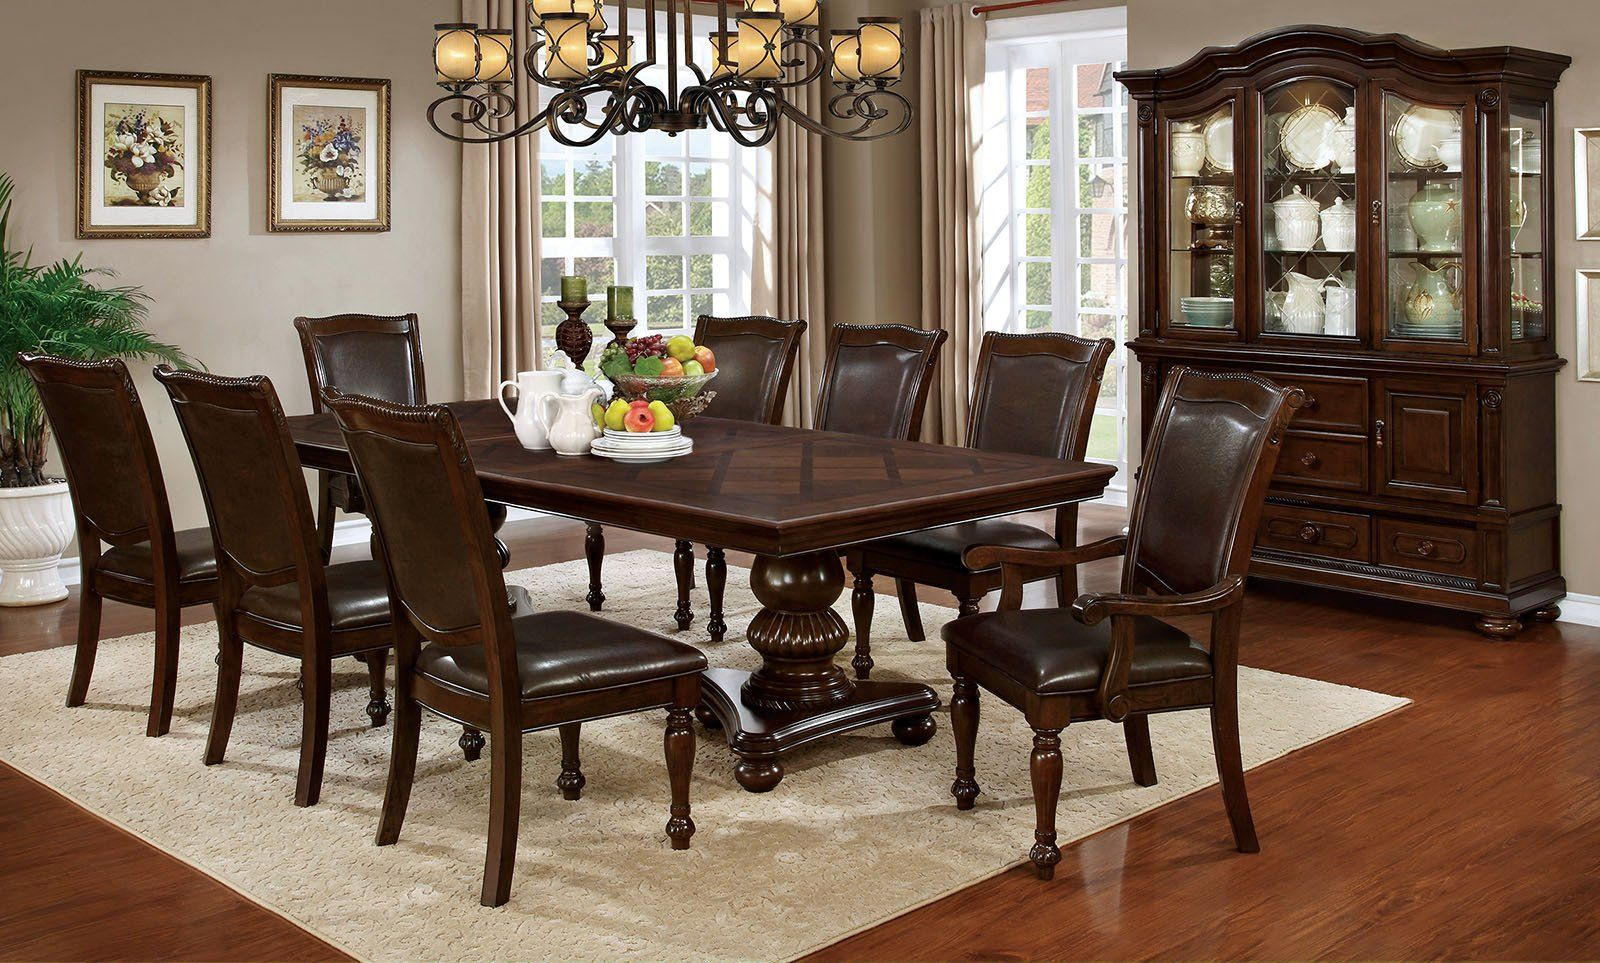 Alpena Traditional Dining Table Set  Products Entrancing Traditional Dining Room Set Inspiration